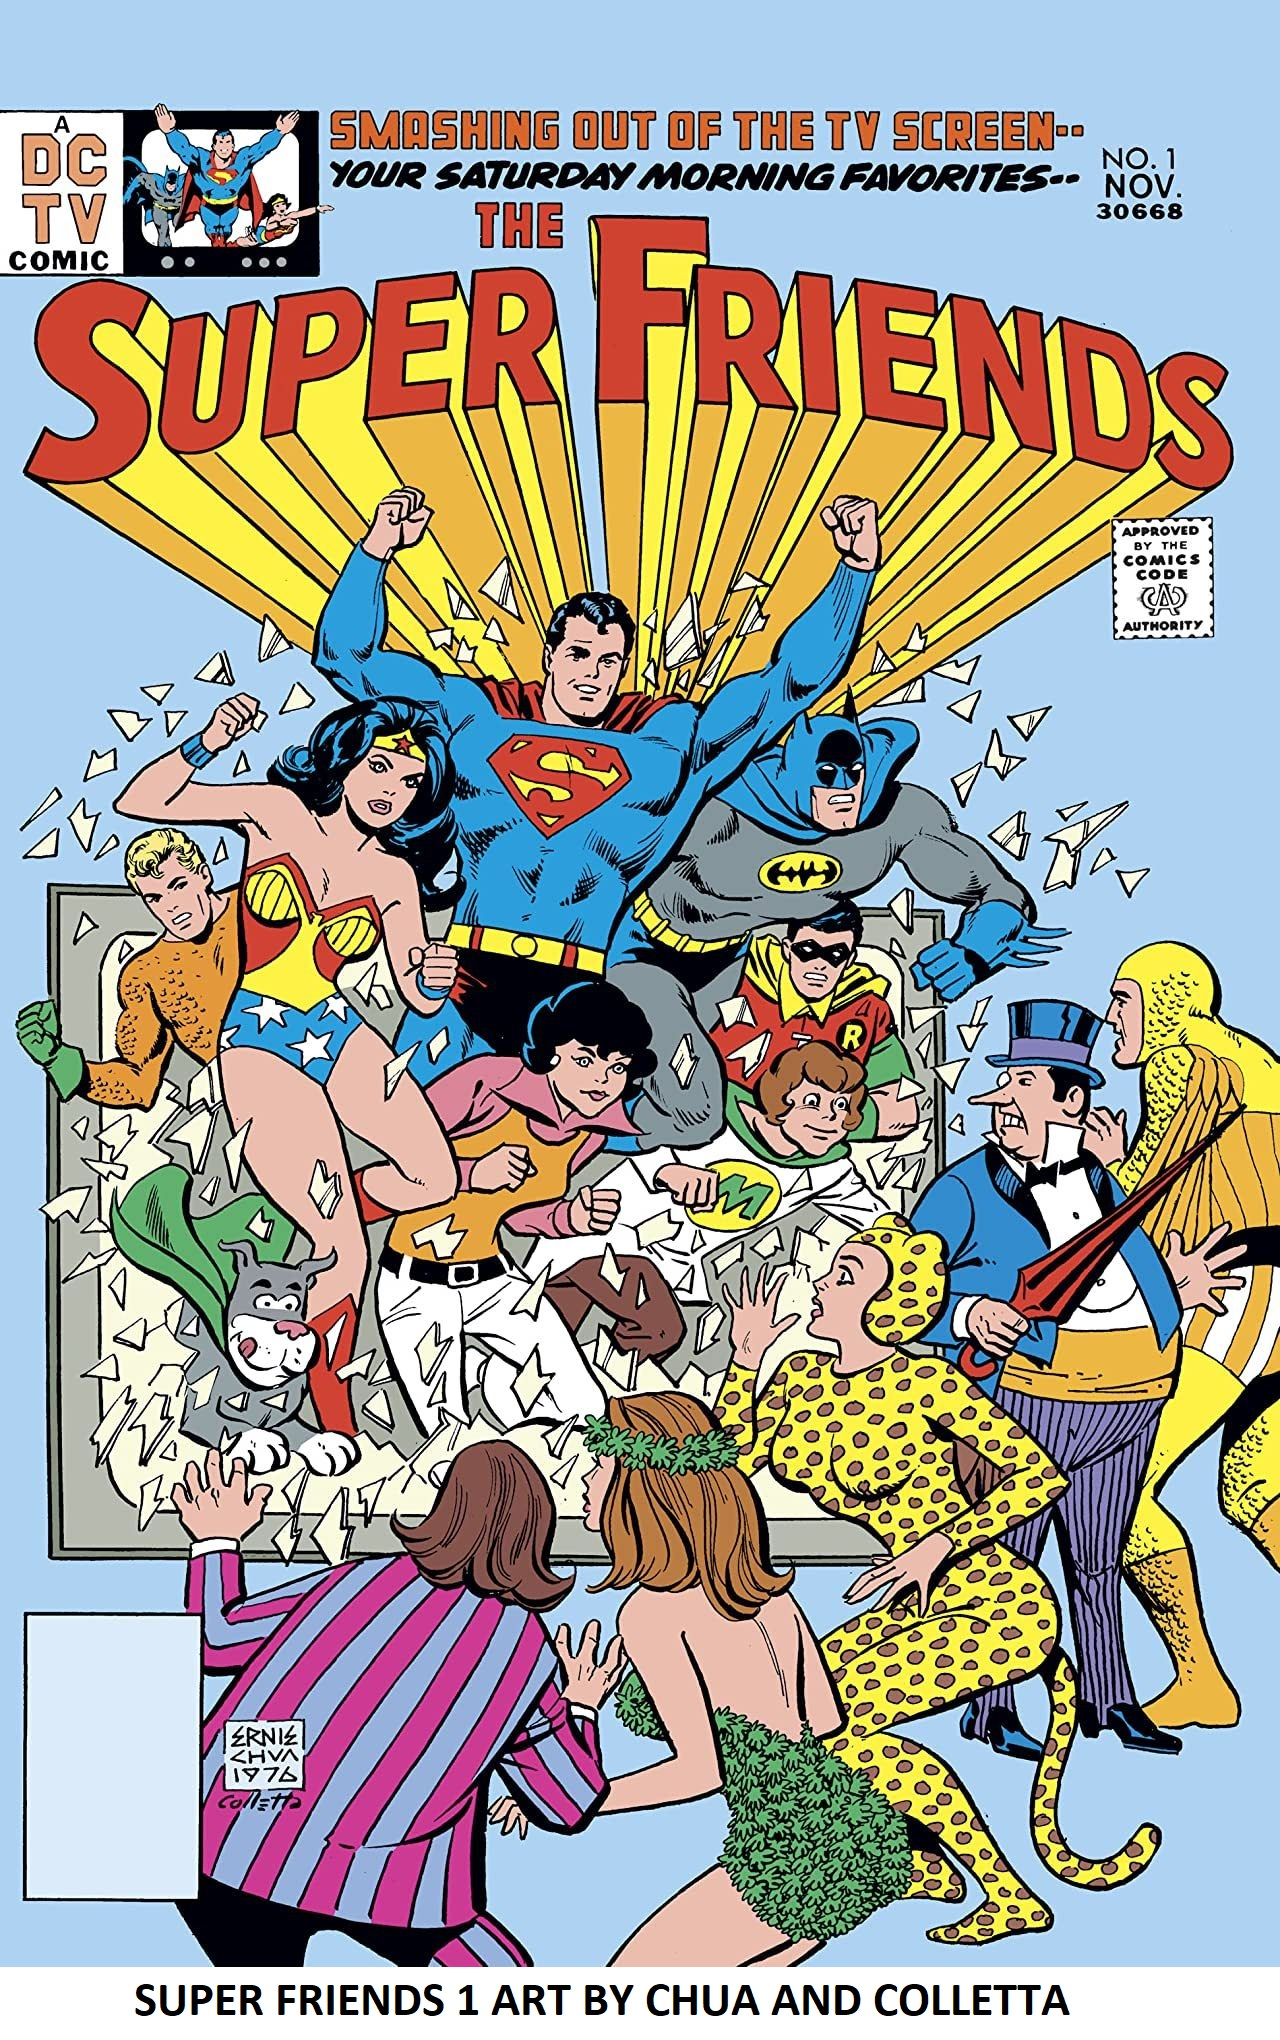 SUPER FRIENDS #1 ART BY ERNIE CHUA AND VINCE COLLETTA